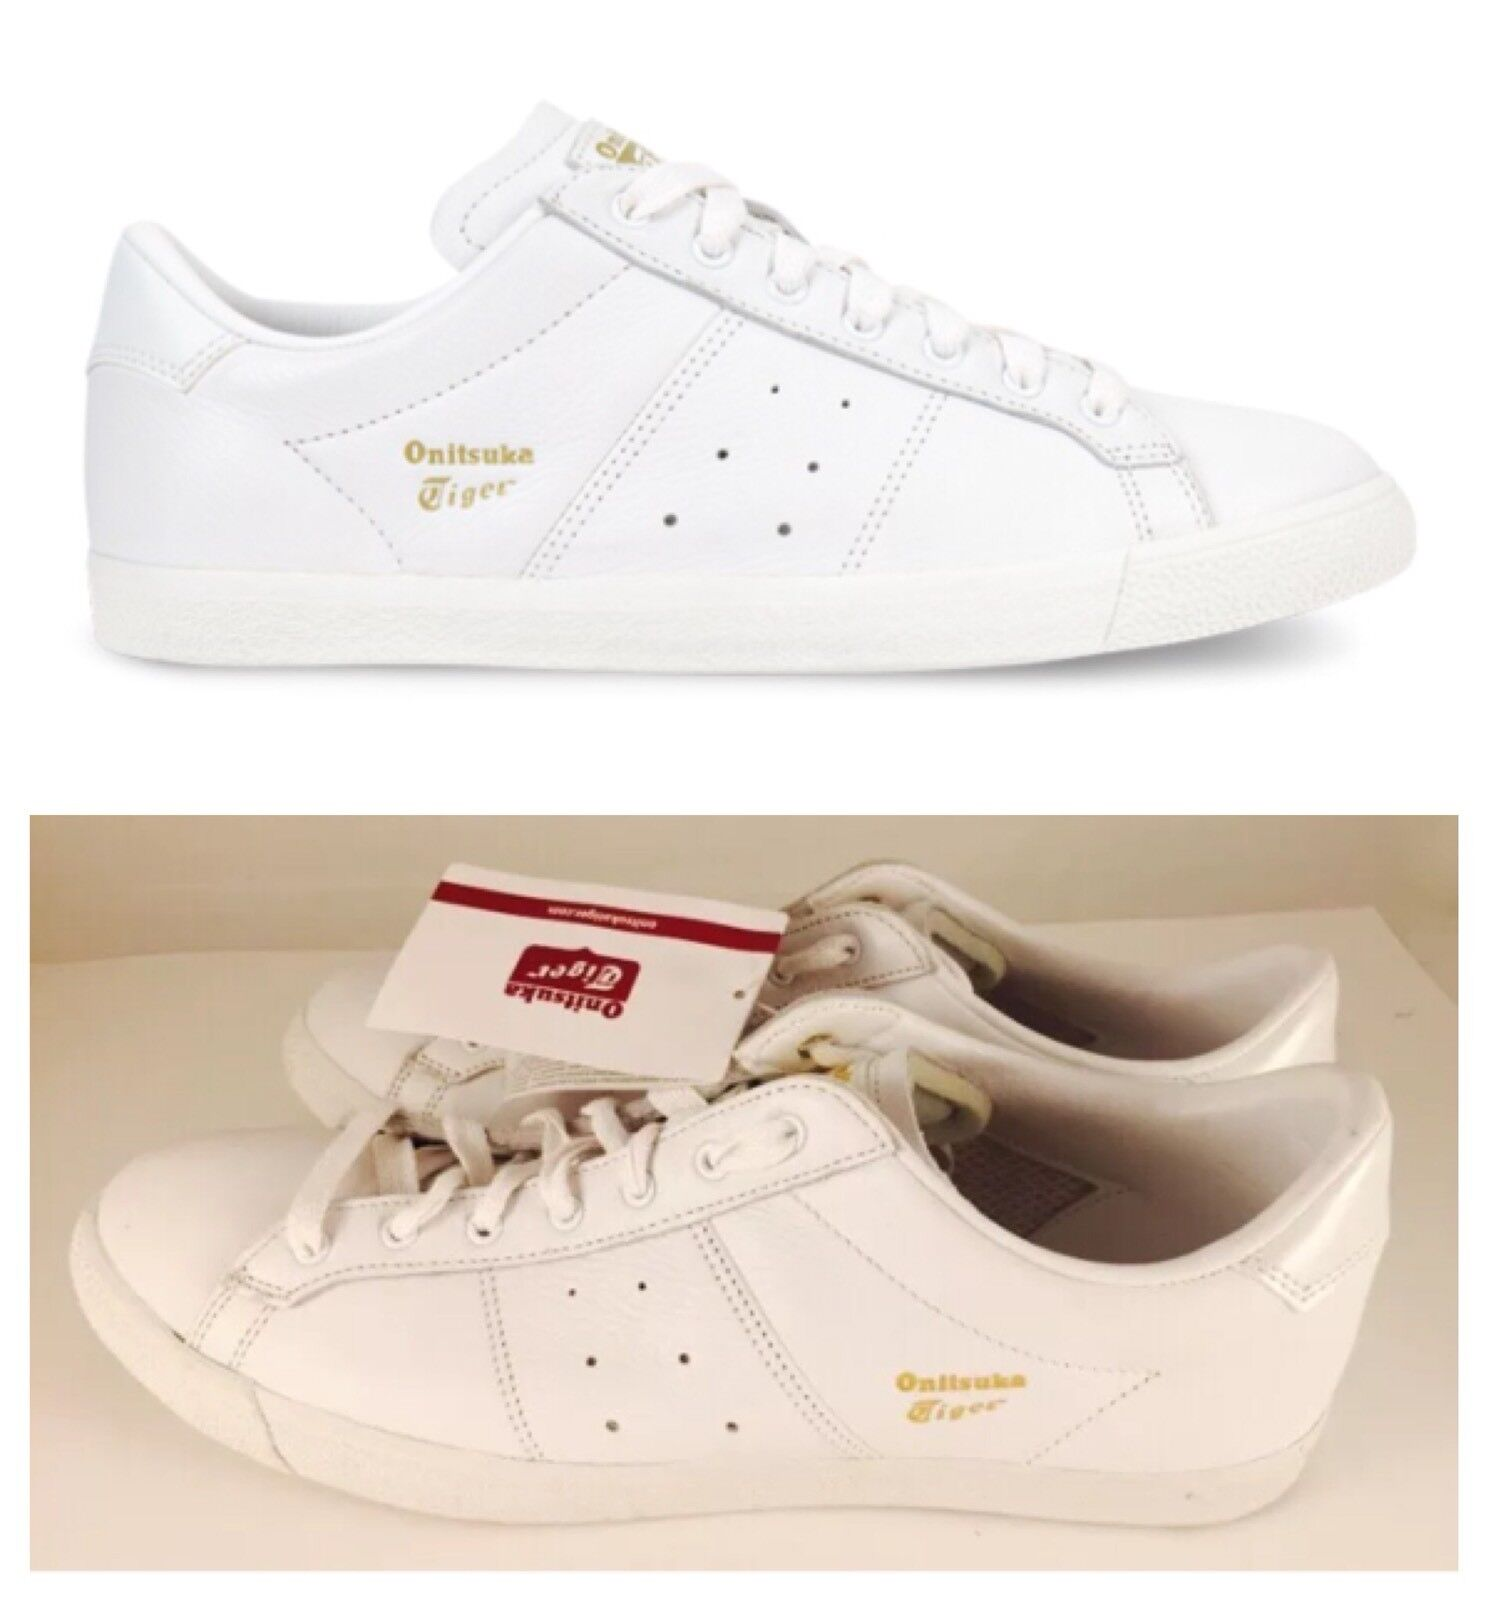 New Onitsuka Tiger Asics LAWNSHIP White Leather Men's Sneakers Comfortable Comfortable and good-looking